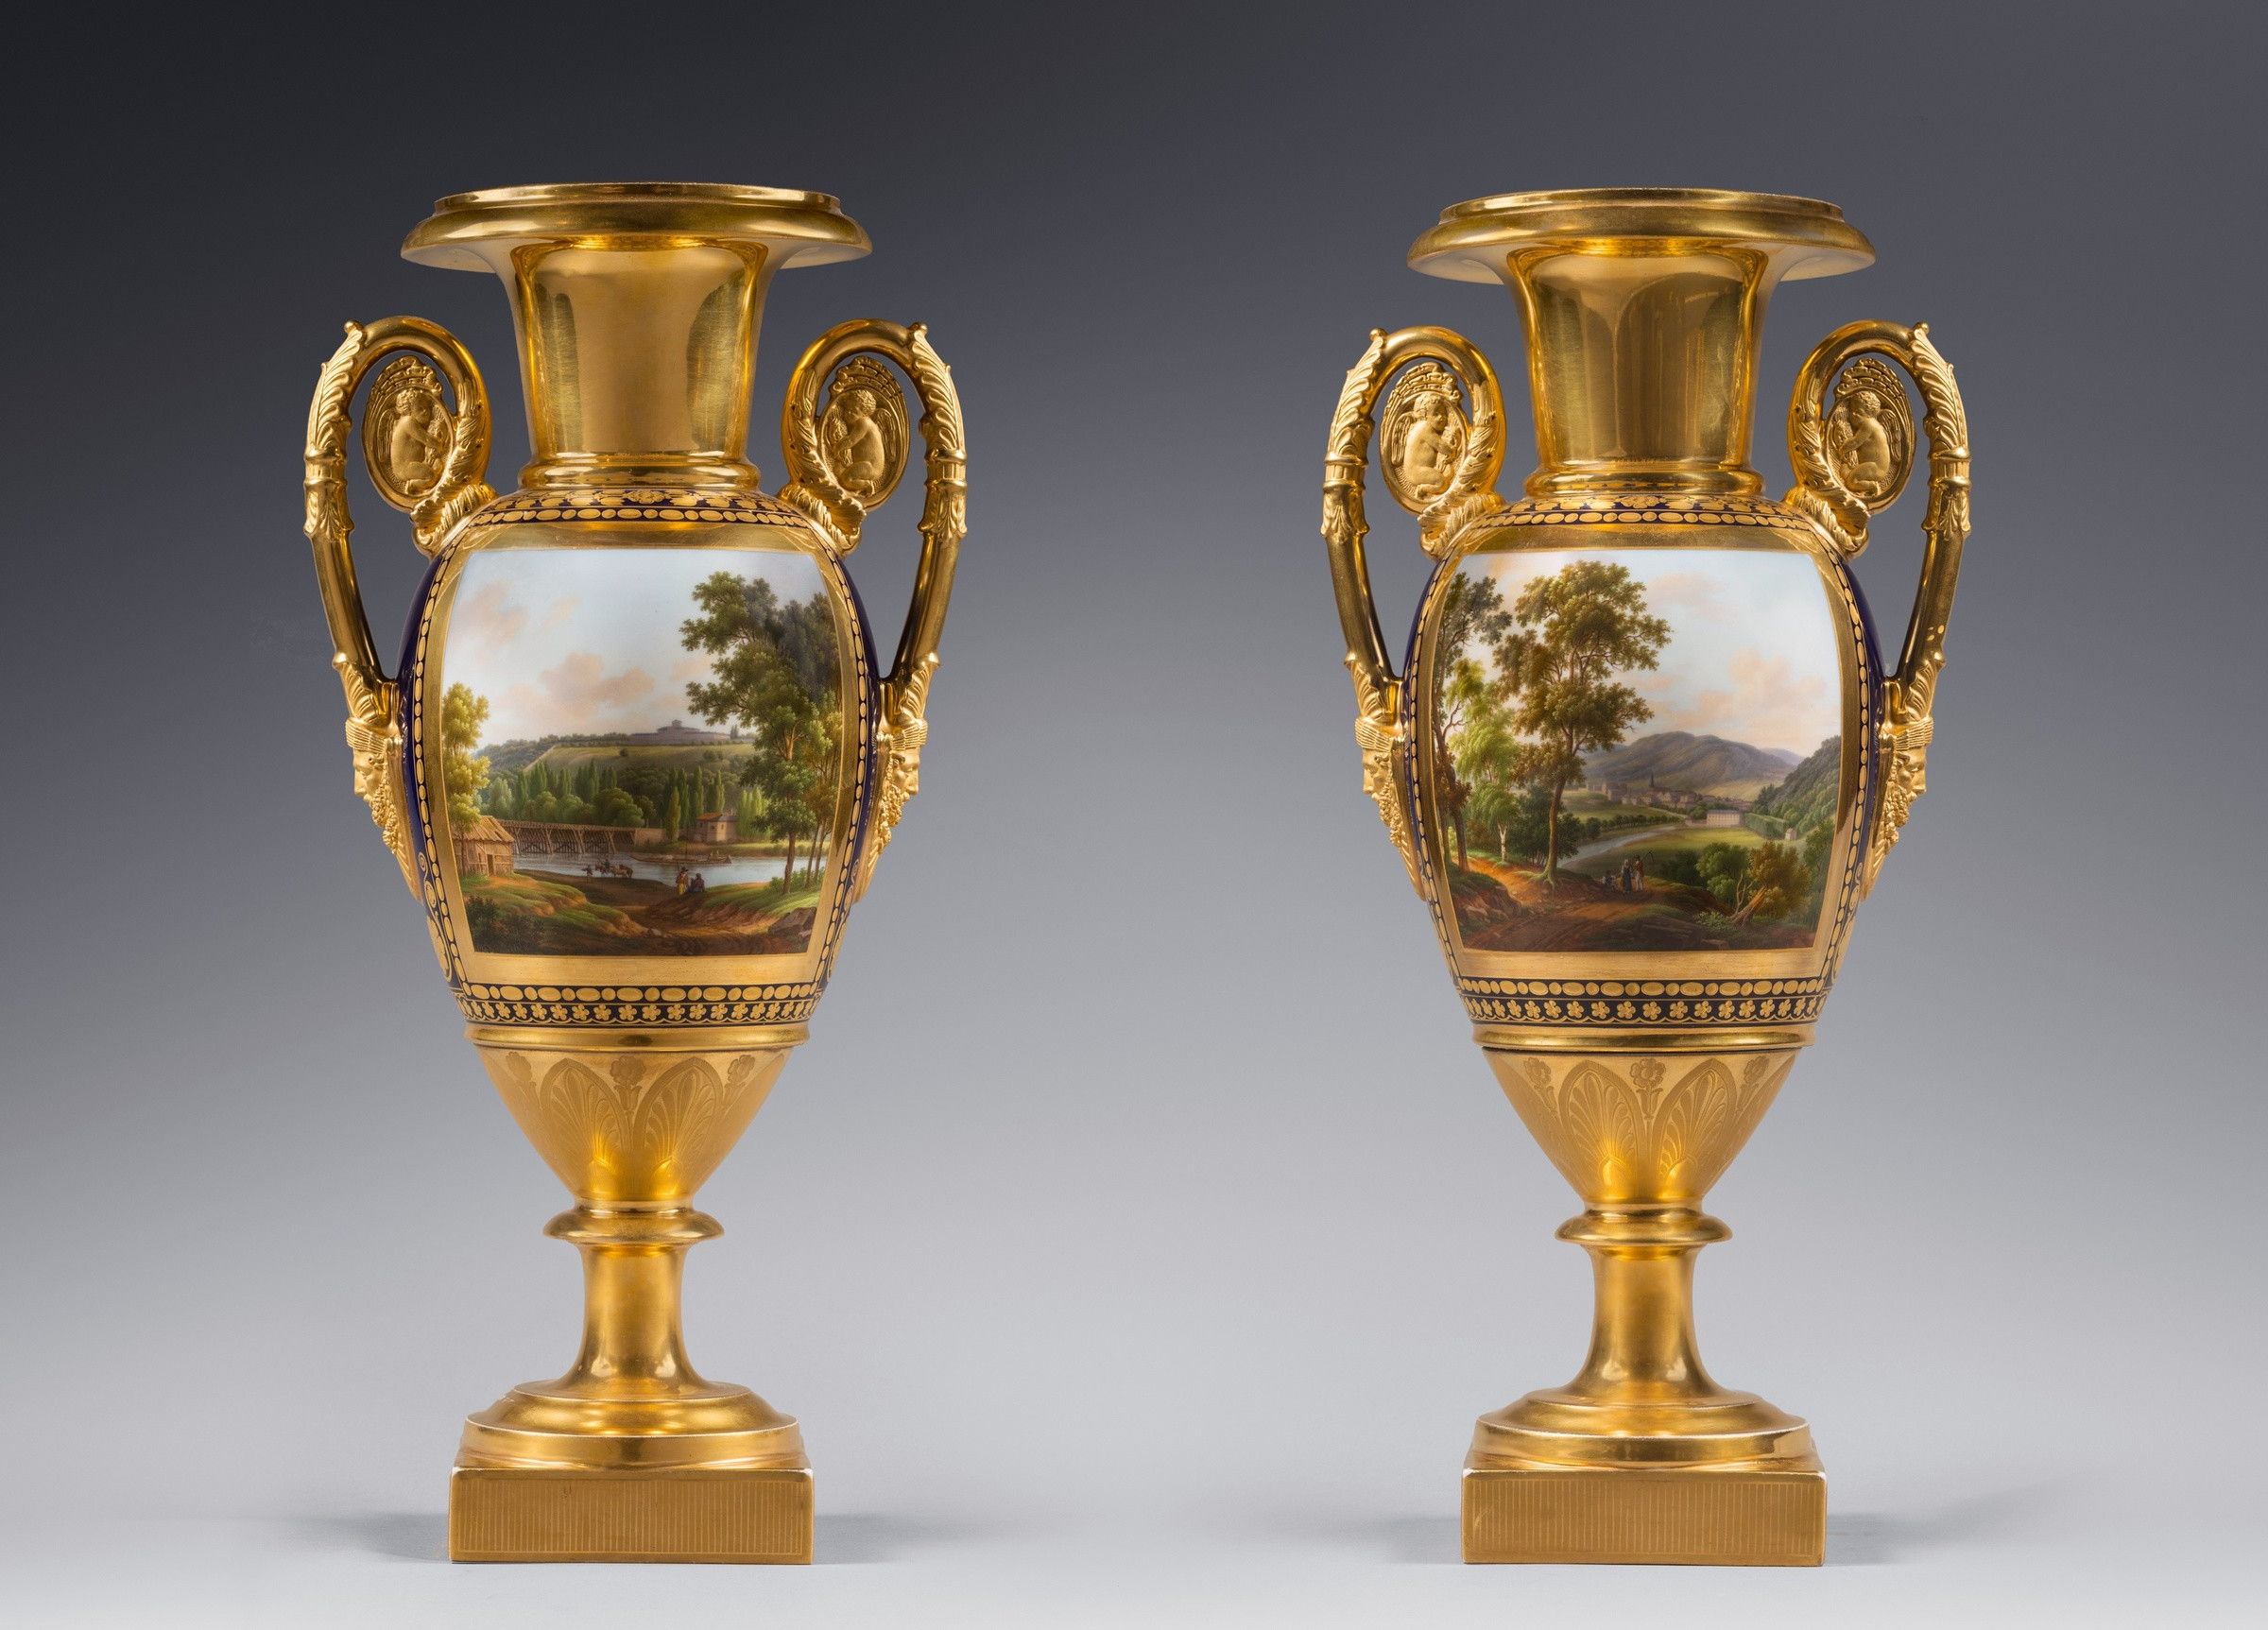 3 Feet Tall Vases Of Nast Fra¨res Manufactory attributed to A Pair Of Restauration Two for A Pair Of Restauration Two Handled Vases Probably by Nast Fra¨res Manufactory